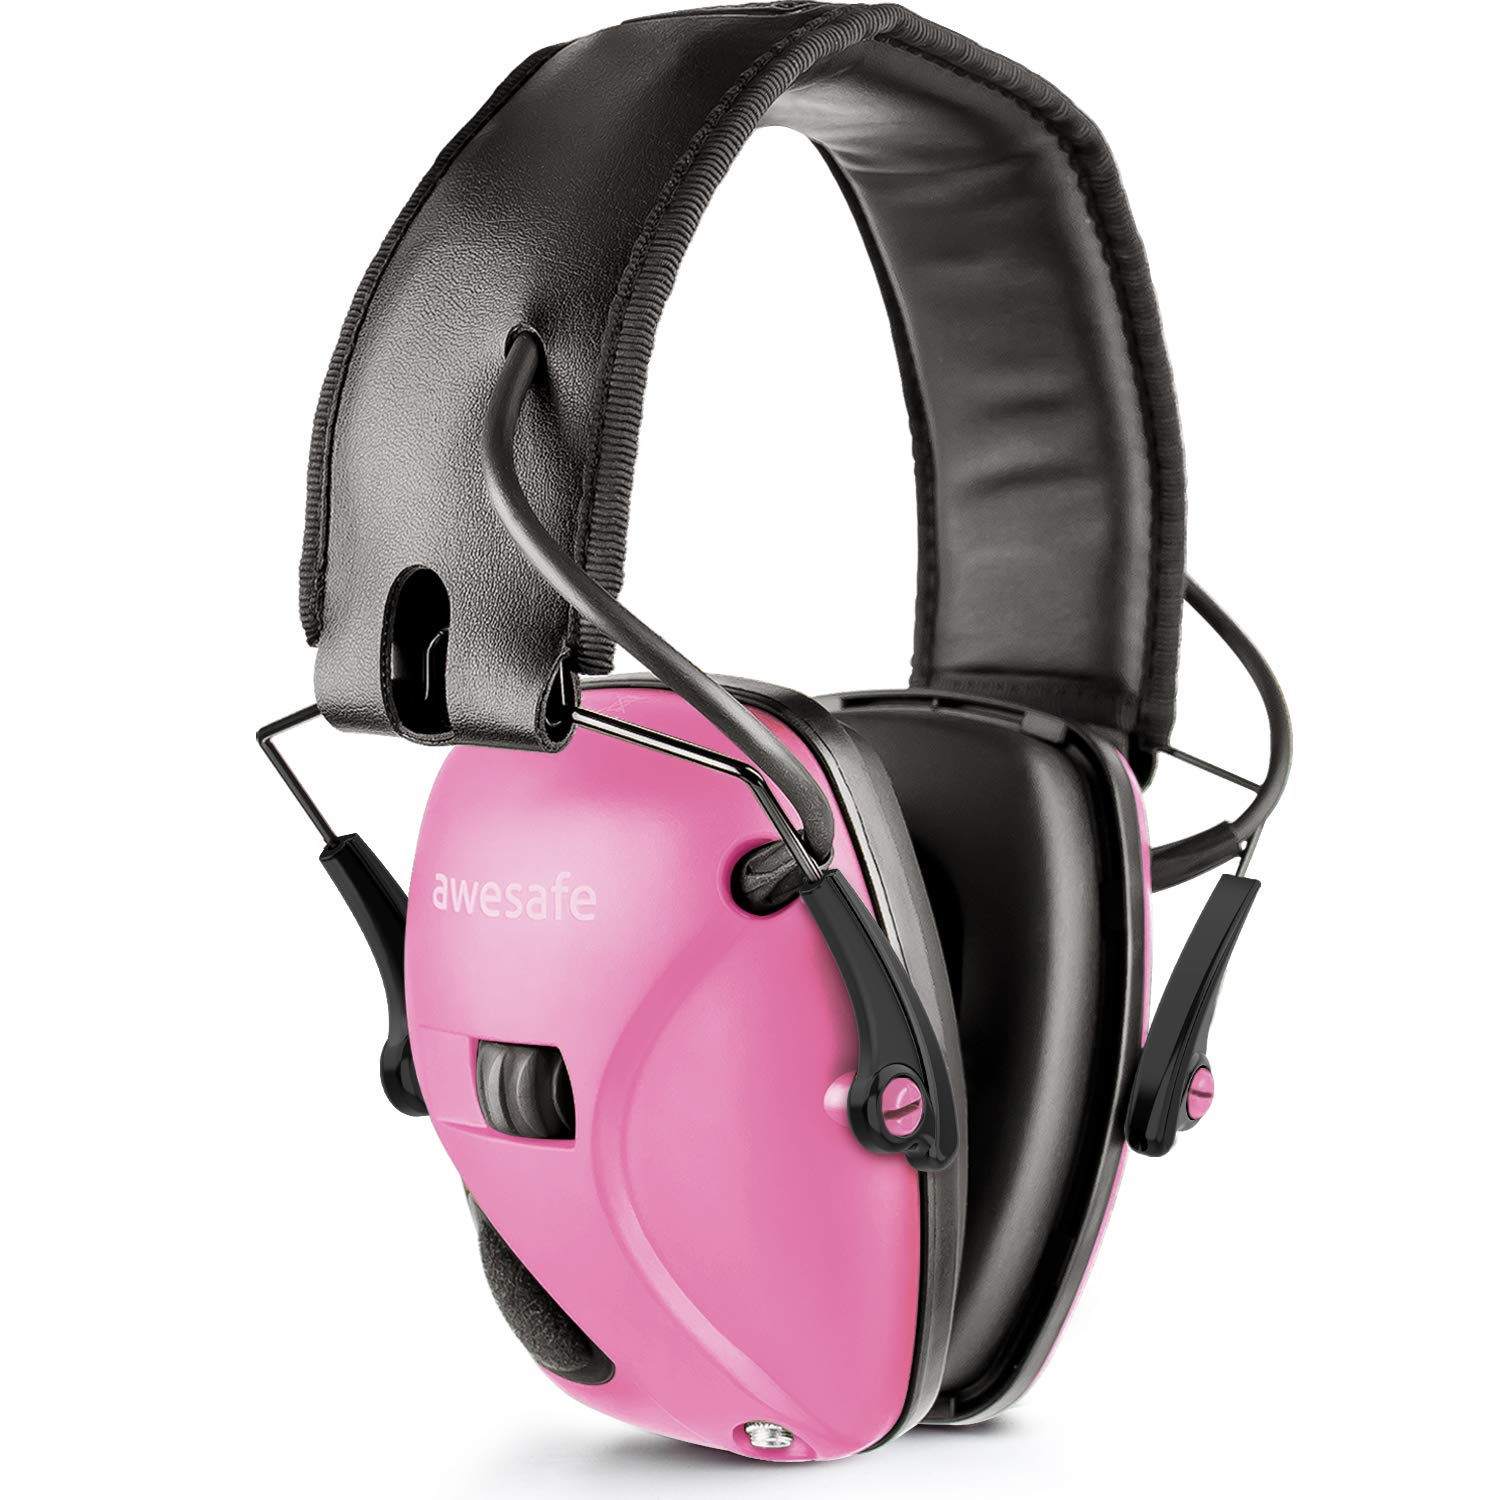 Awesafe Electronic Shooting Earmuff, GF01 Noise Reduction Sound Amplification Electronic Safety Ear Muffs, Ear Protection, NRR 22 dB, Ideal for Shooting and Hunting, Pink … …